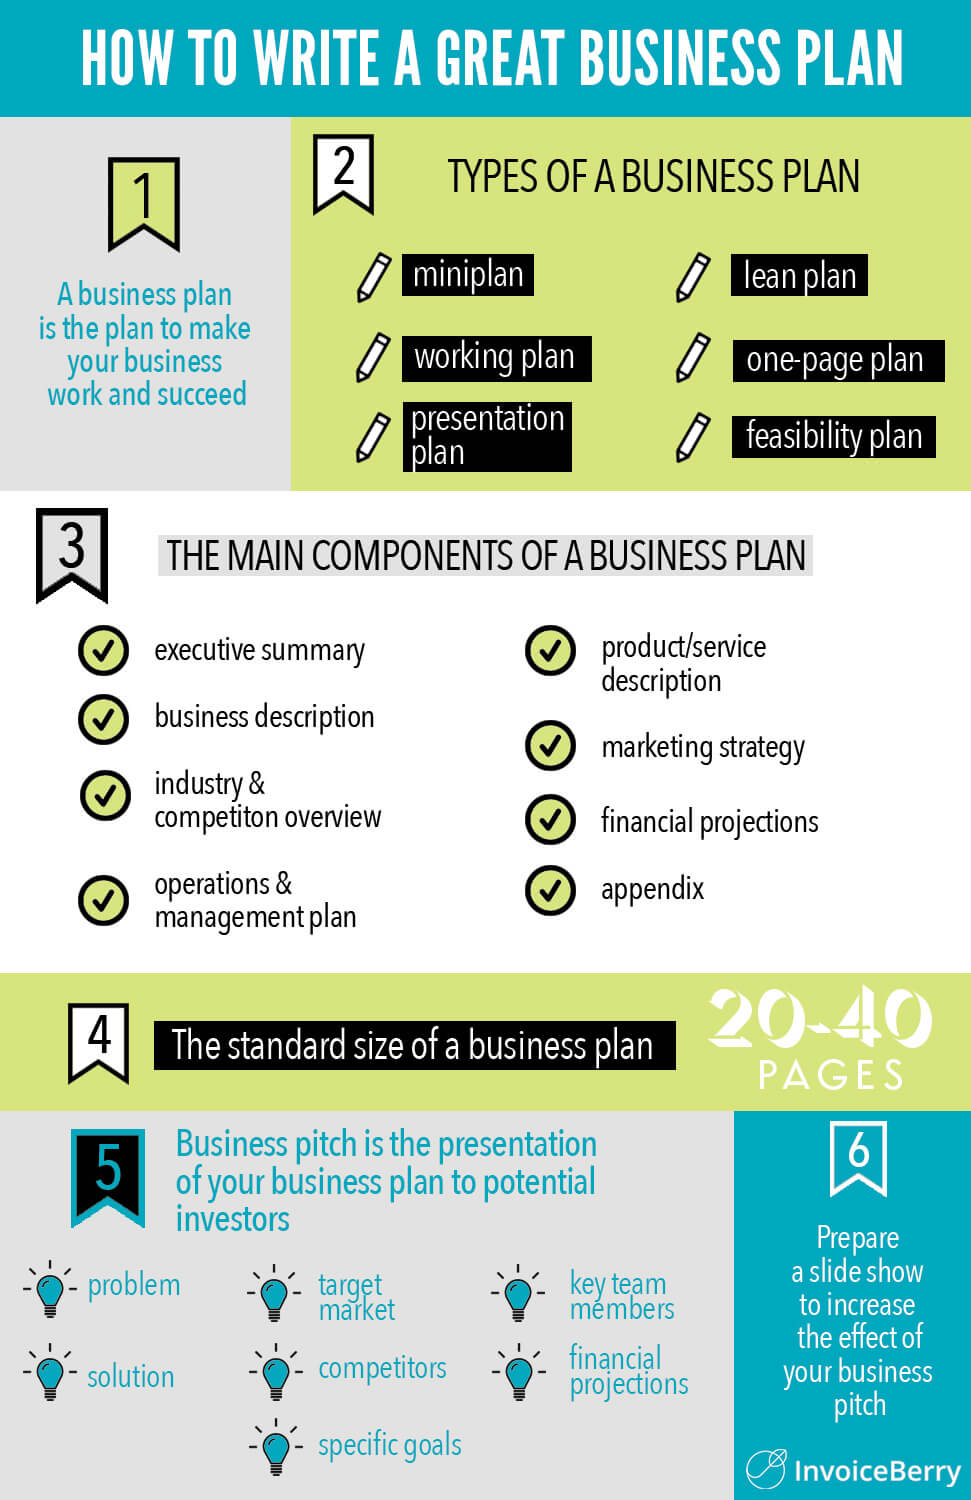 InvoiceBerry's business plan infographic